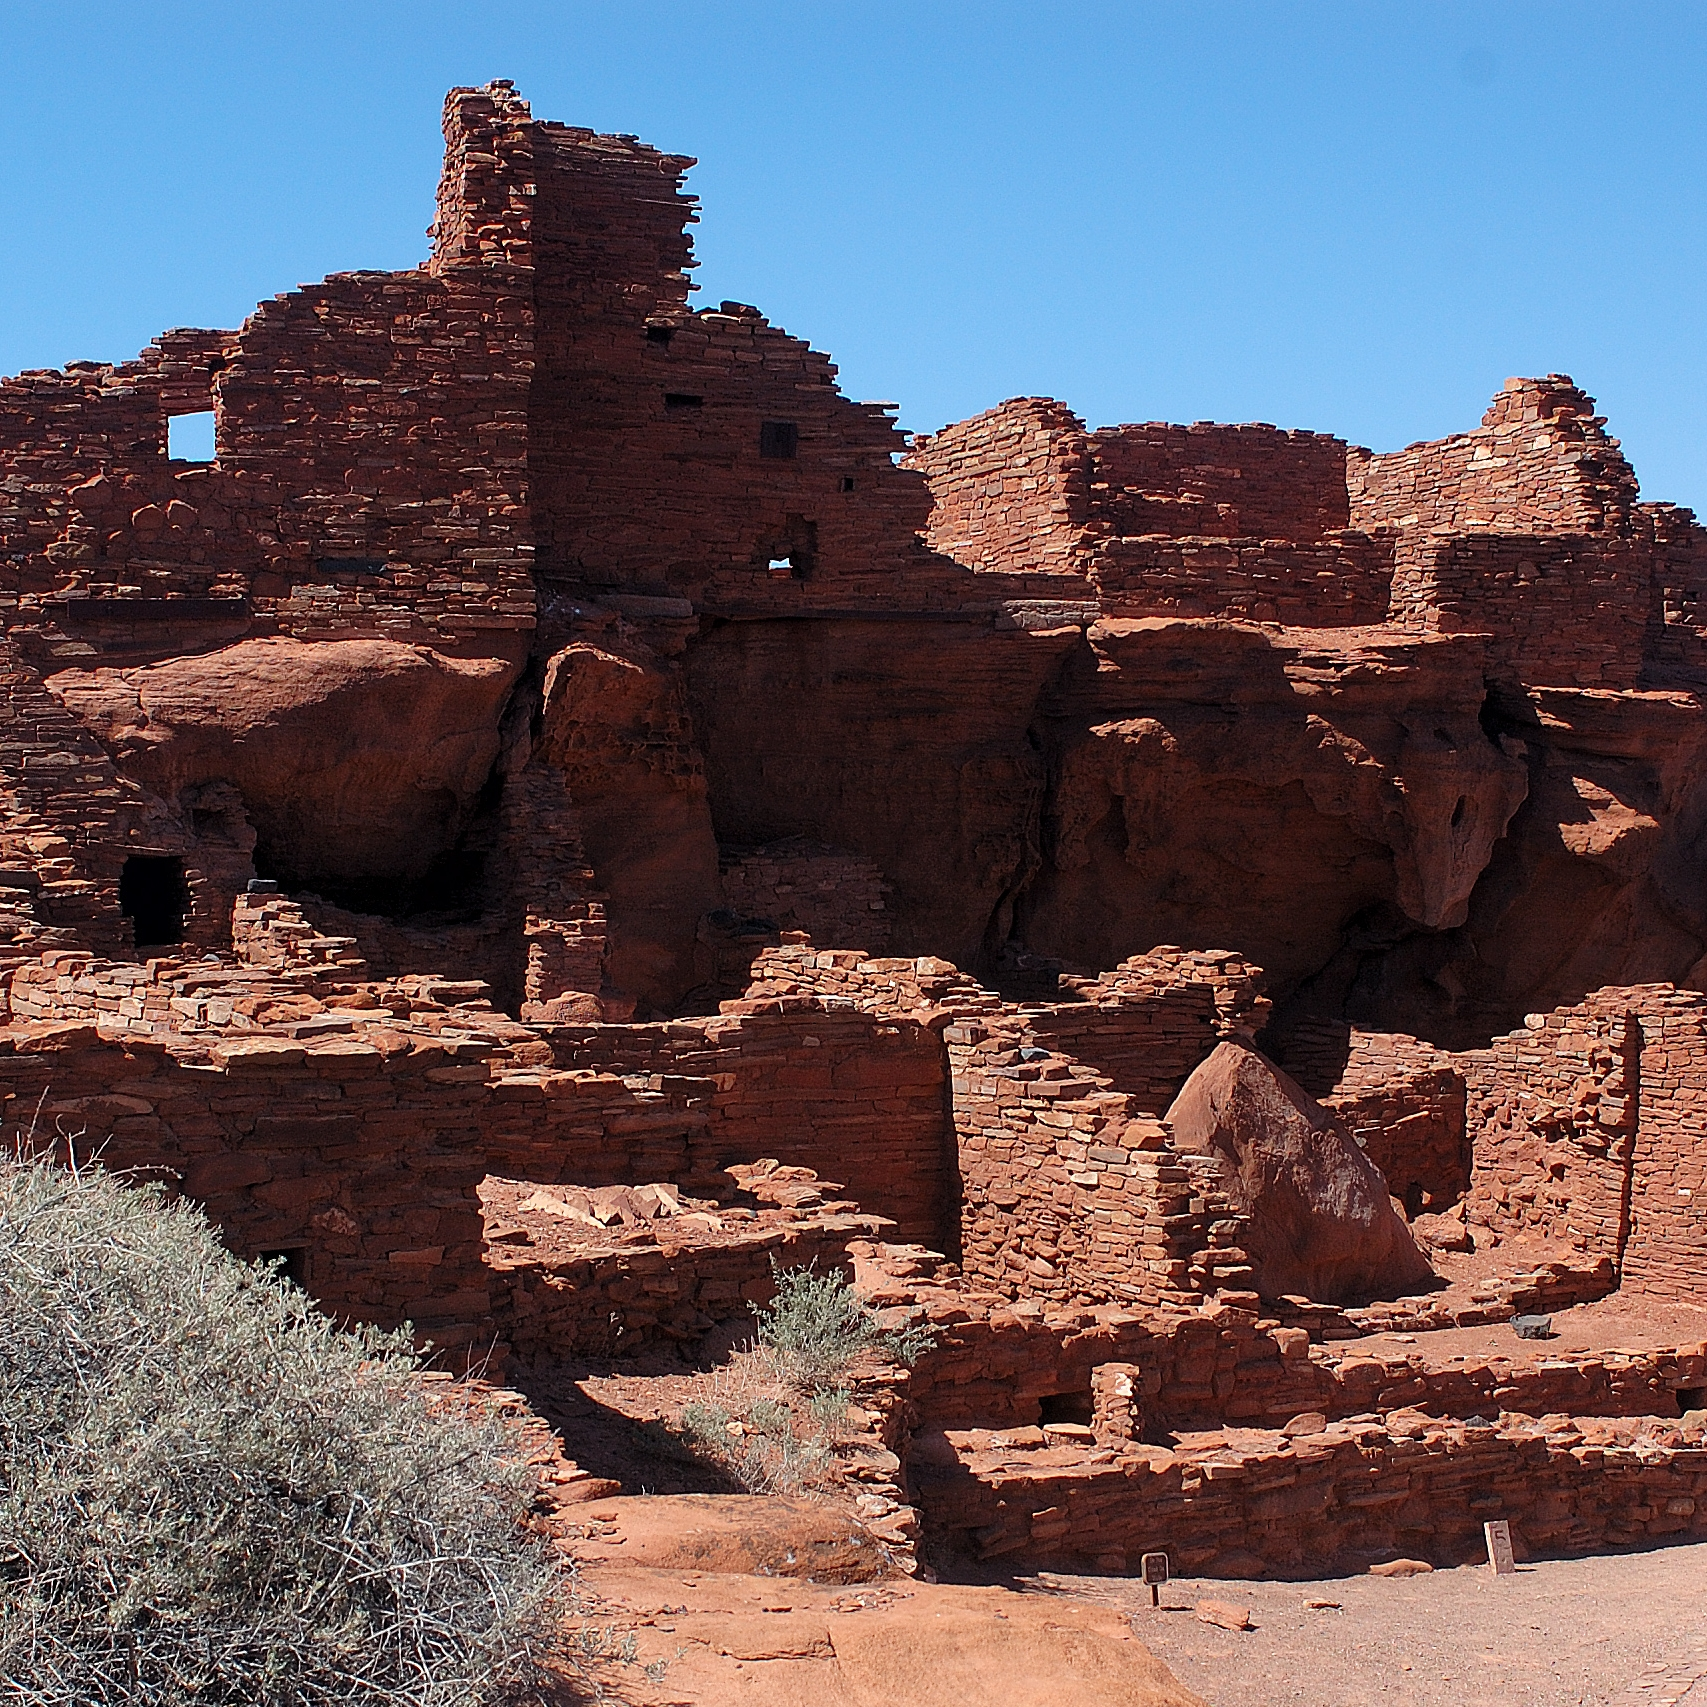 Wupakti Pueblo Ruins in Arizona